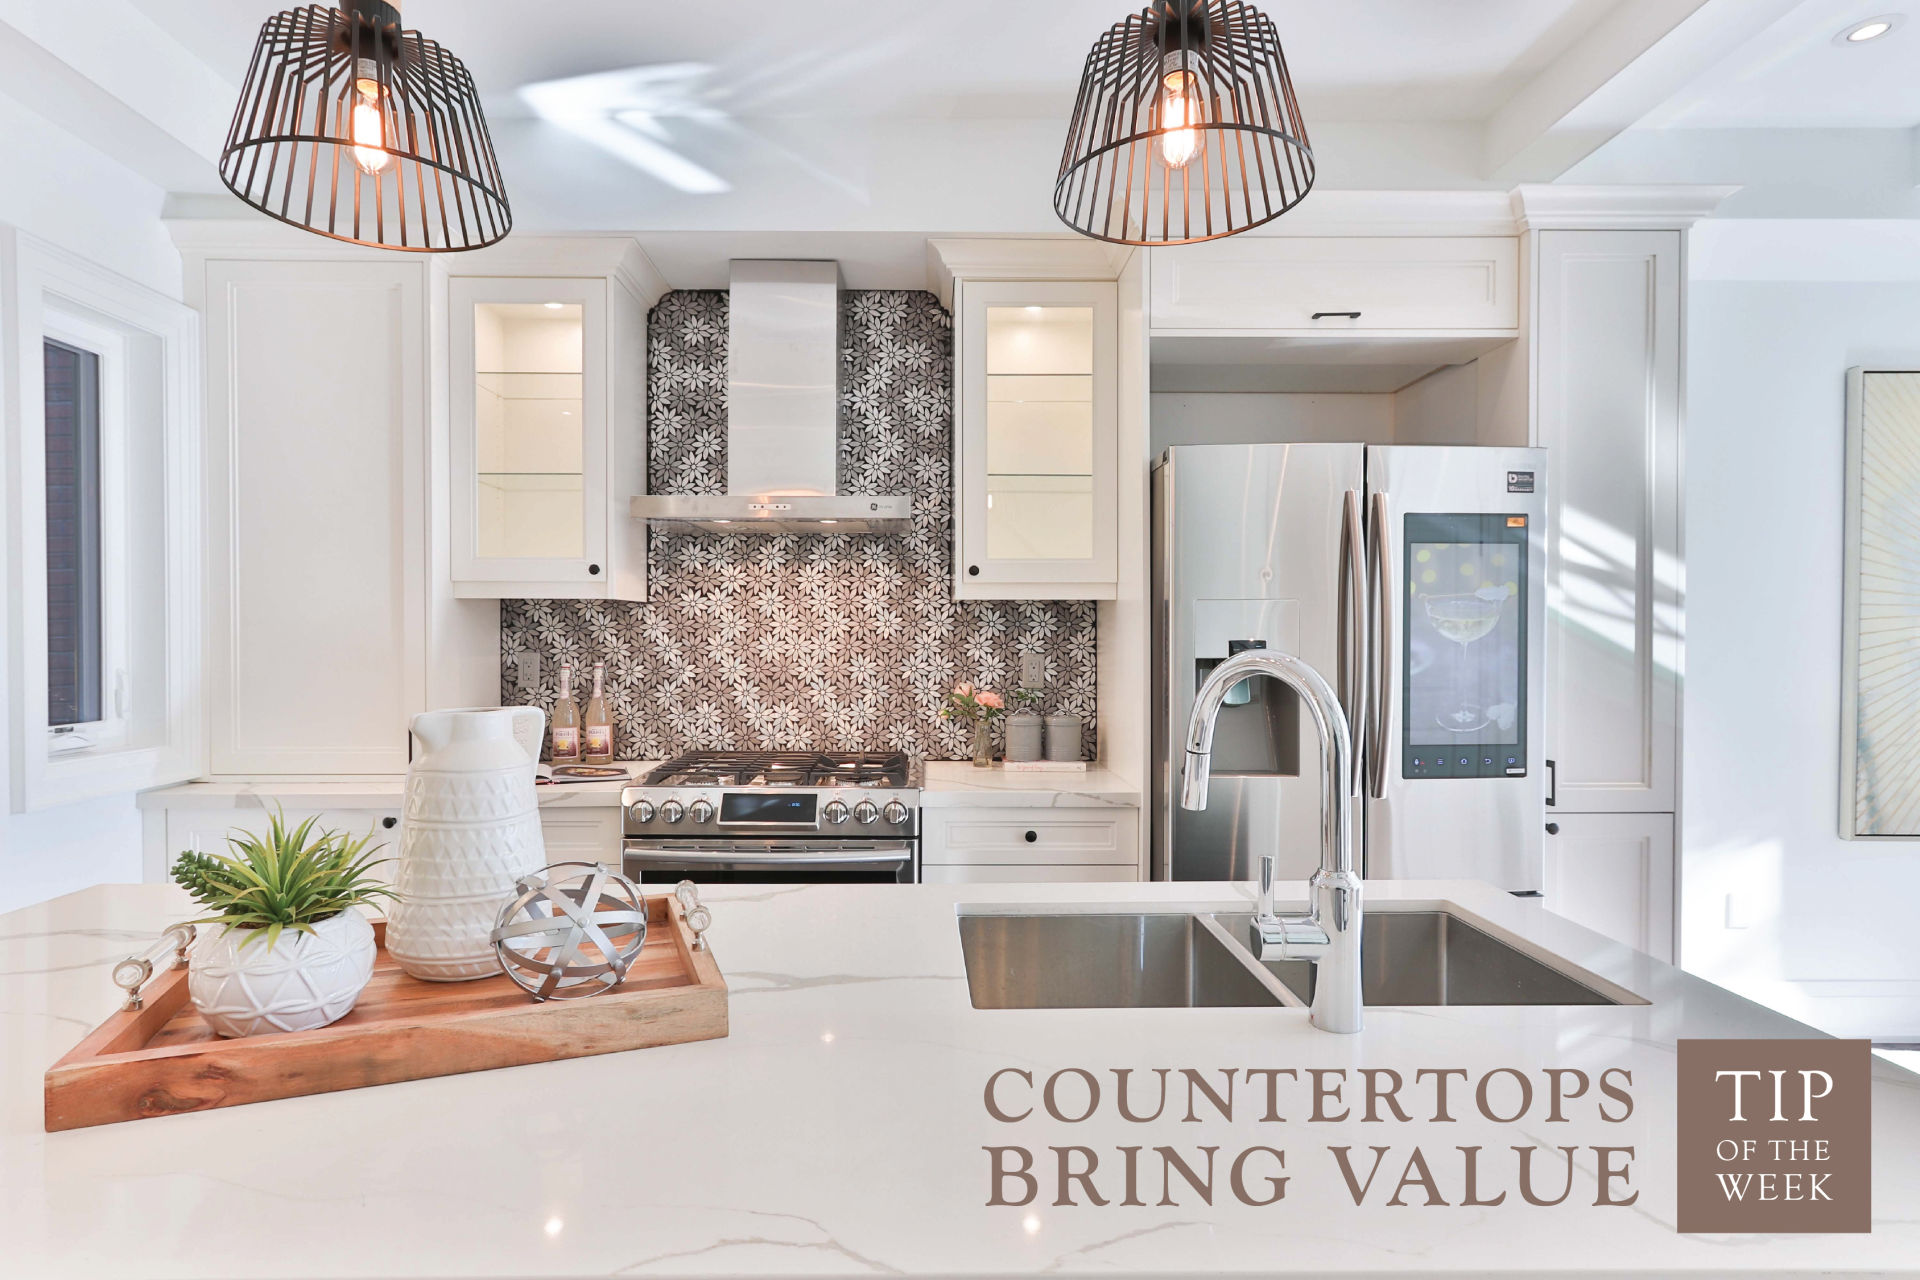 Countertops Bring Value